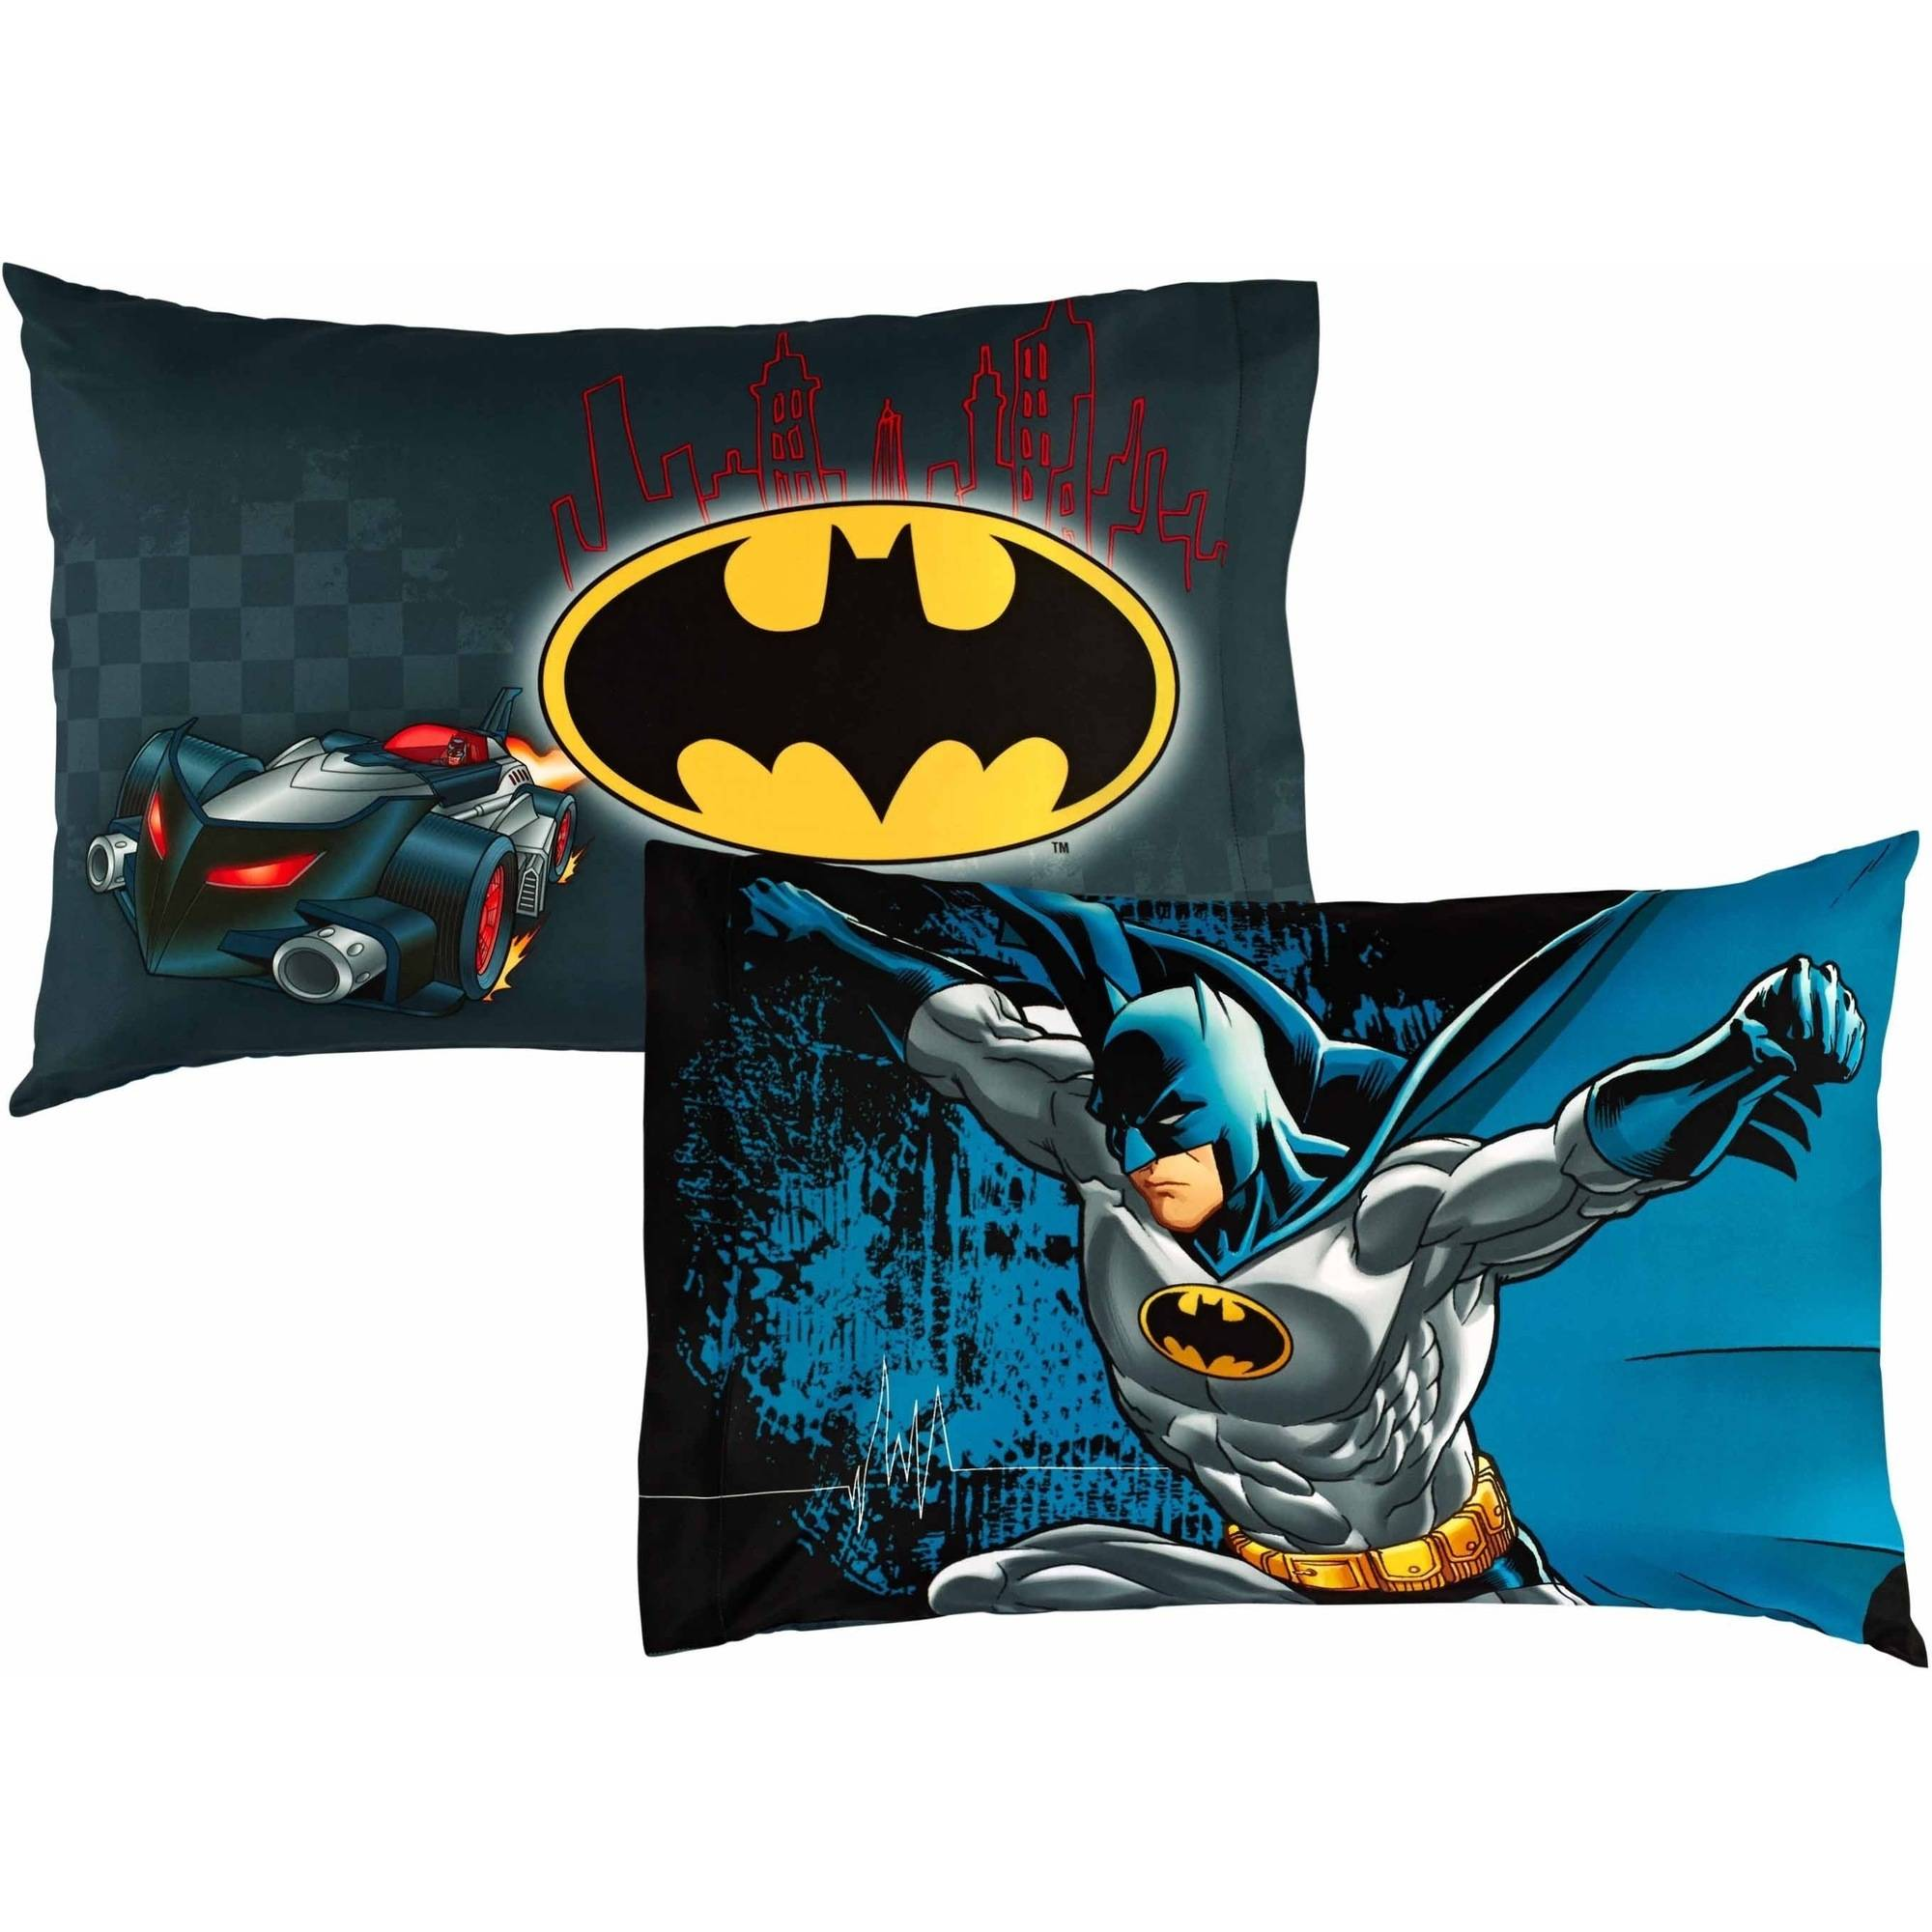 Warner Brothers Batman Guardian Speed Bed In A Bag Bedding Set   Walmart.com